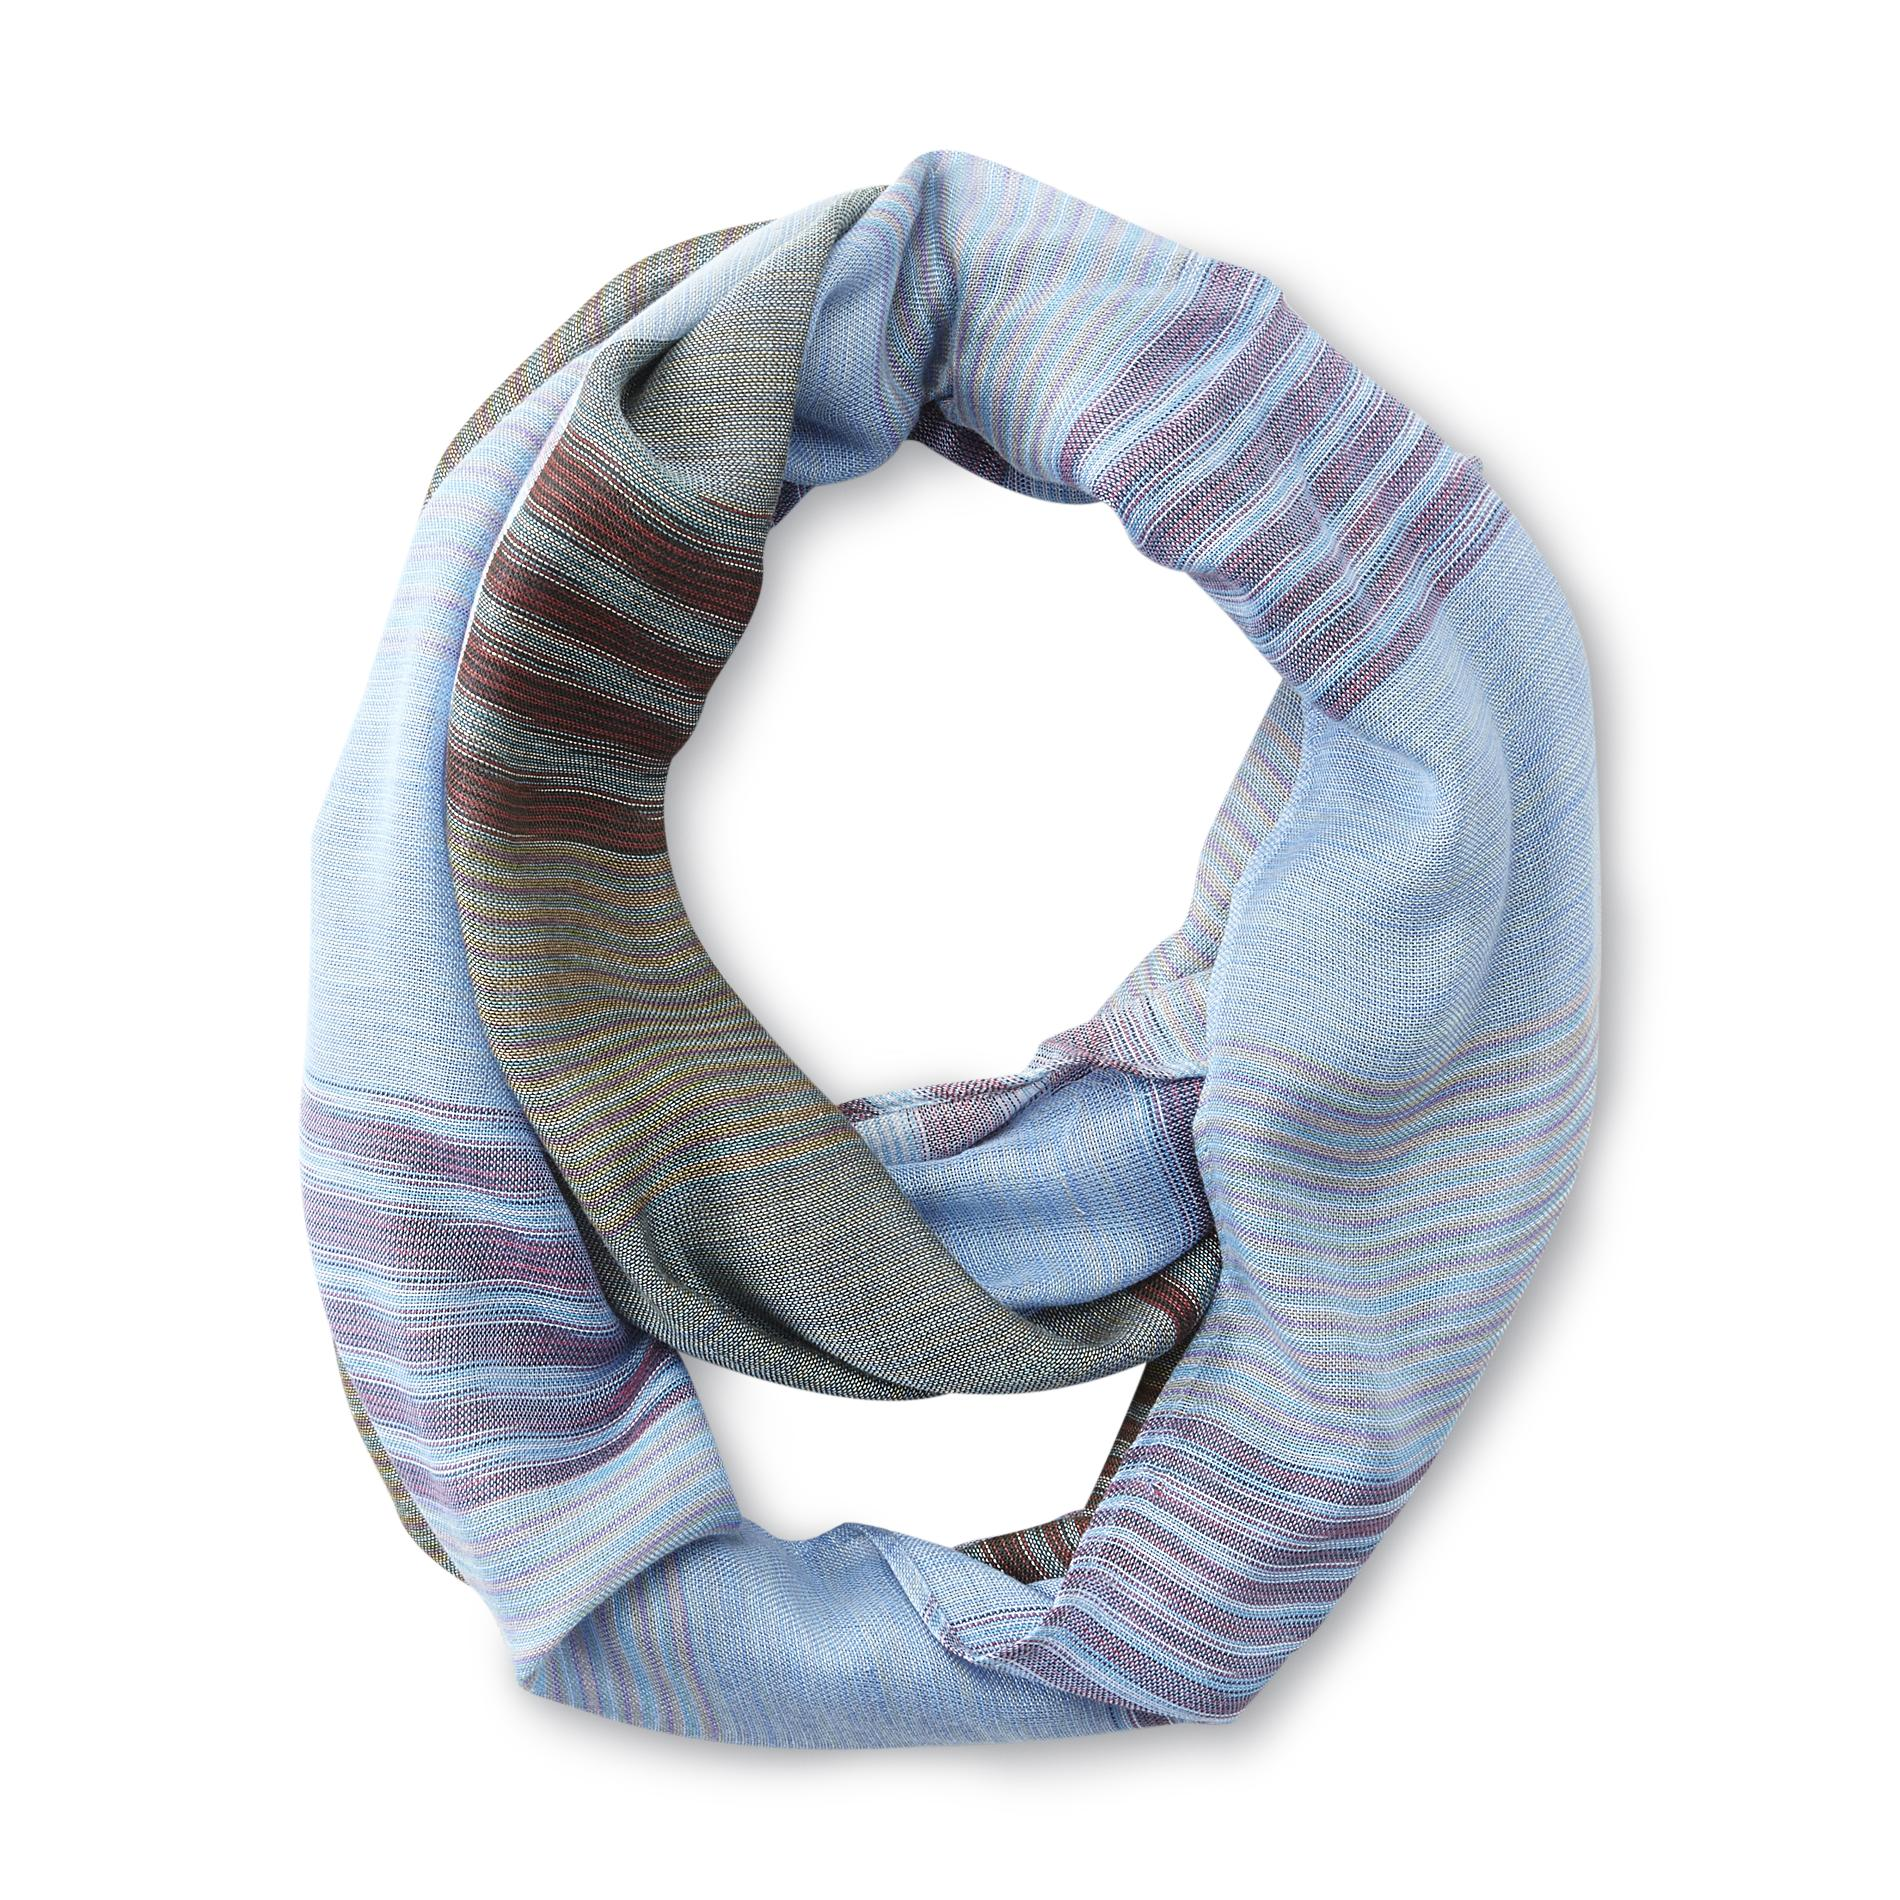 Joe Boxer Women's Infinity Fashion Scarf - Plaid